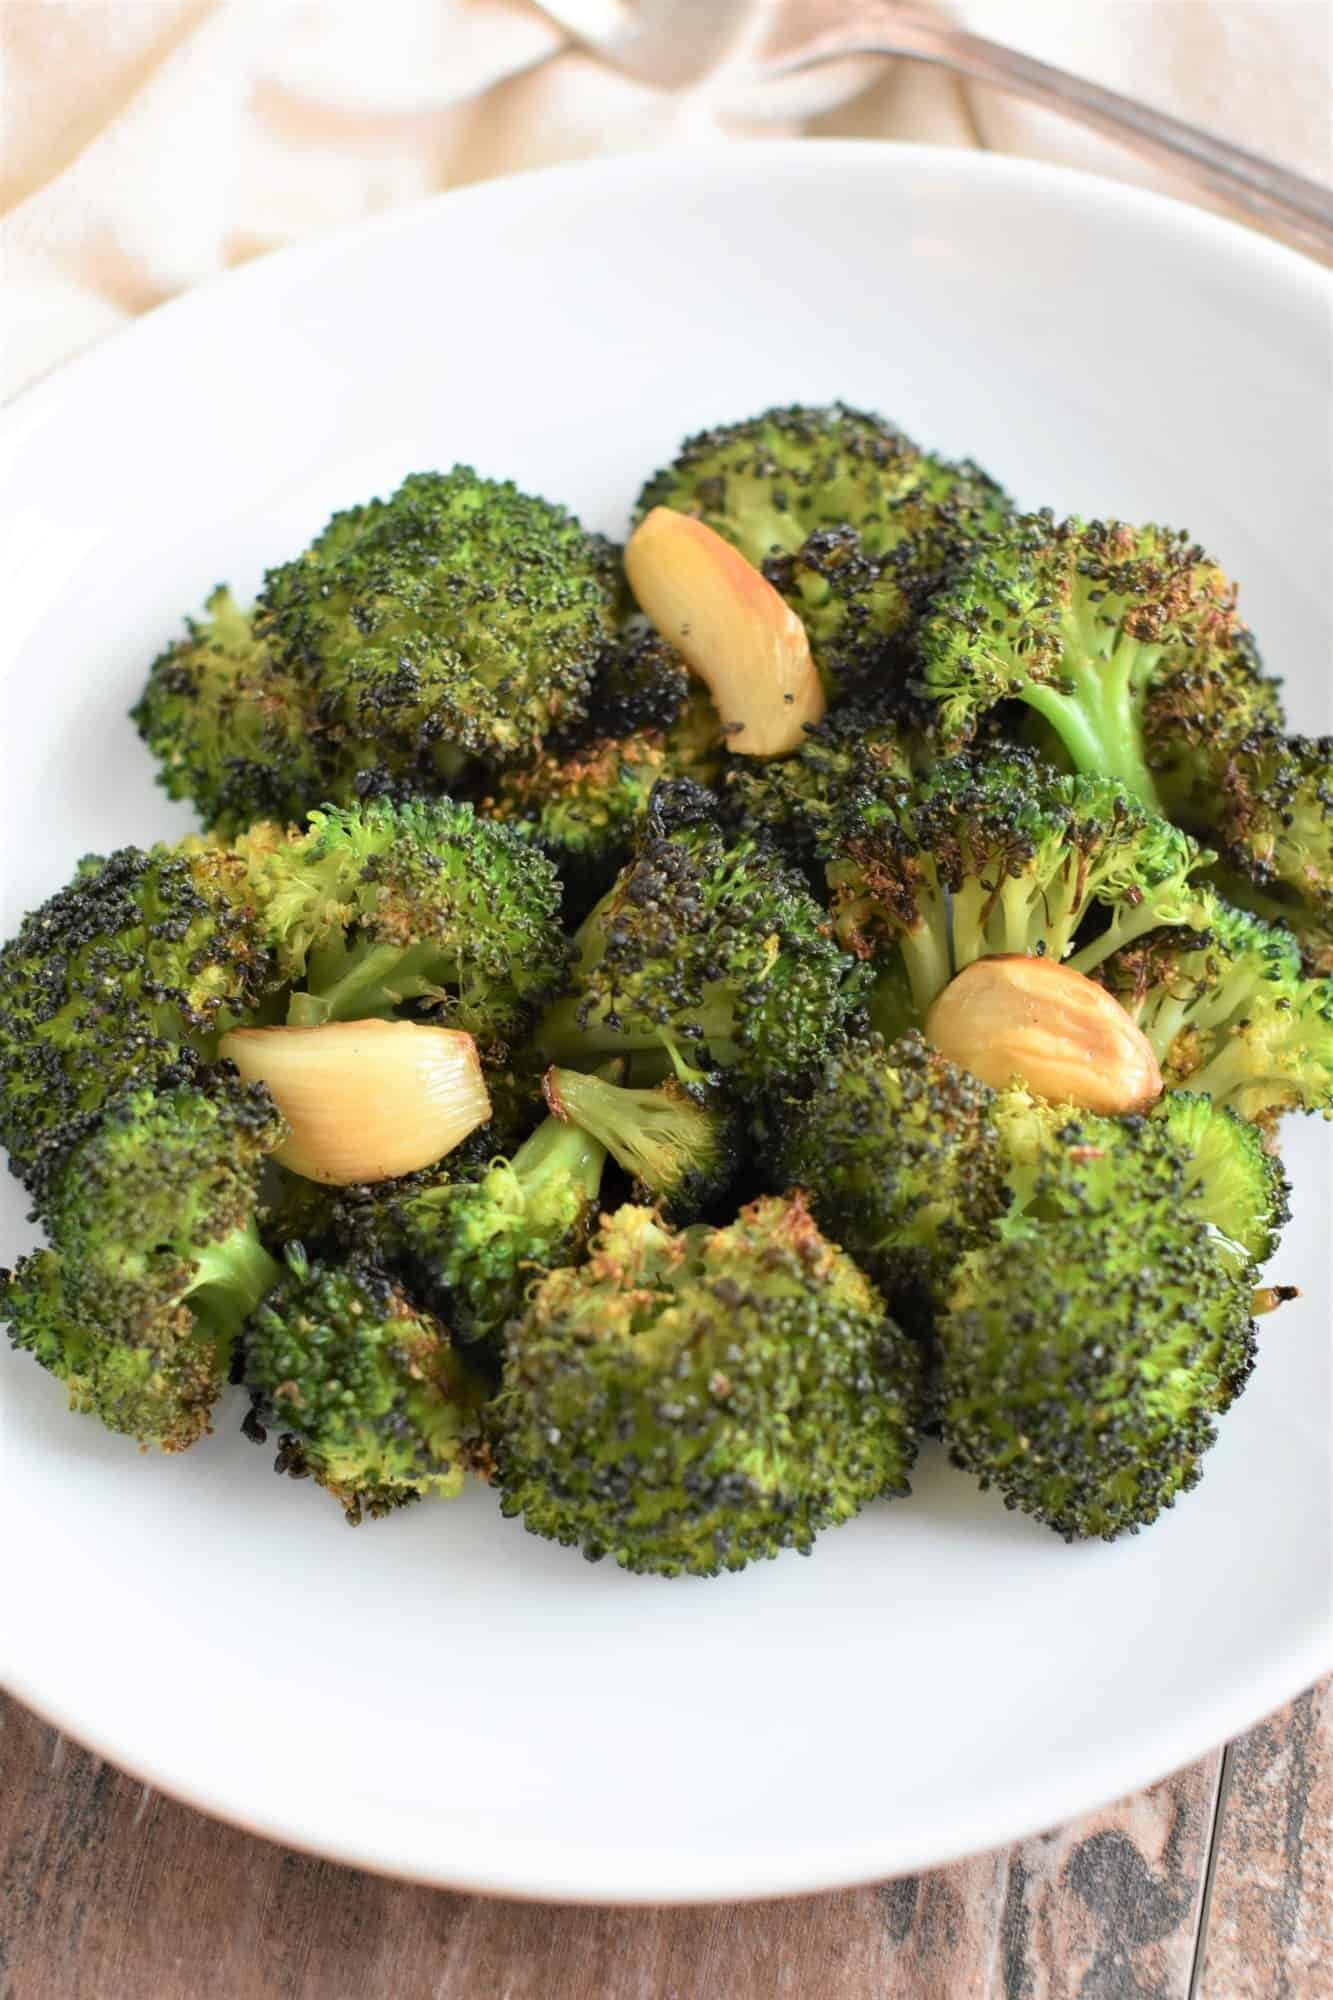 broccoli and garlic on white plate